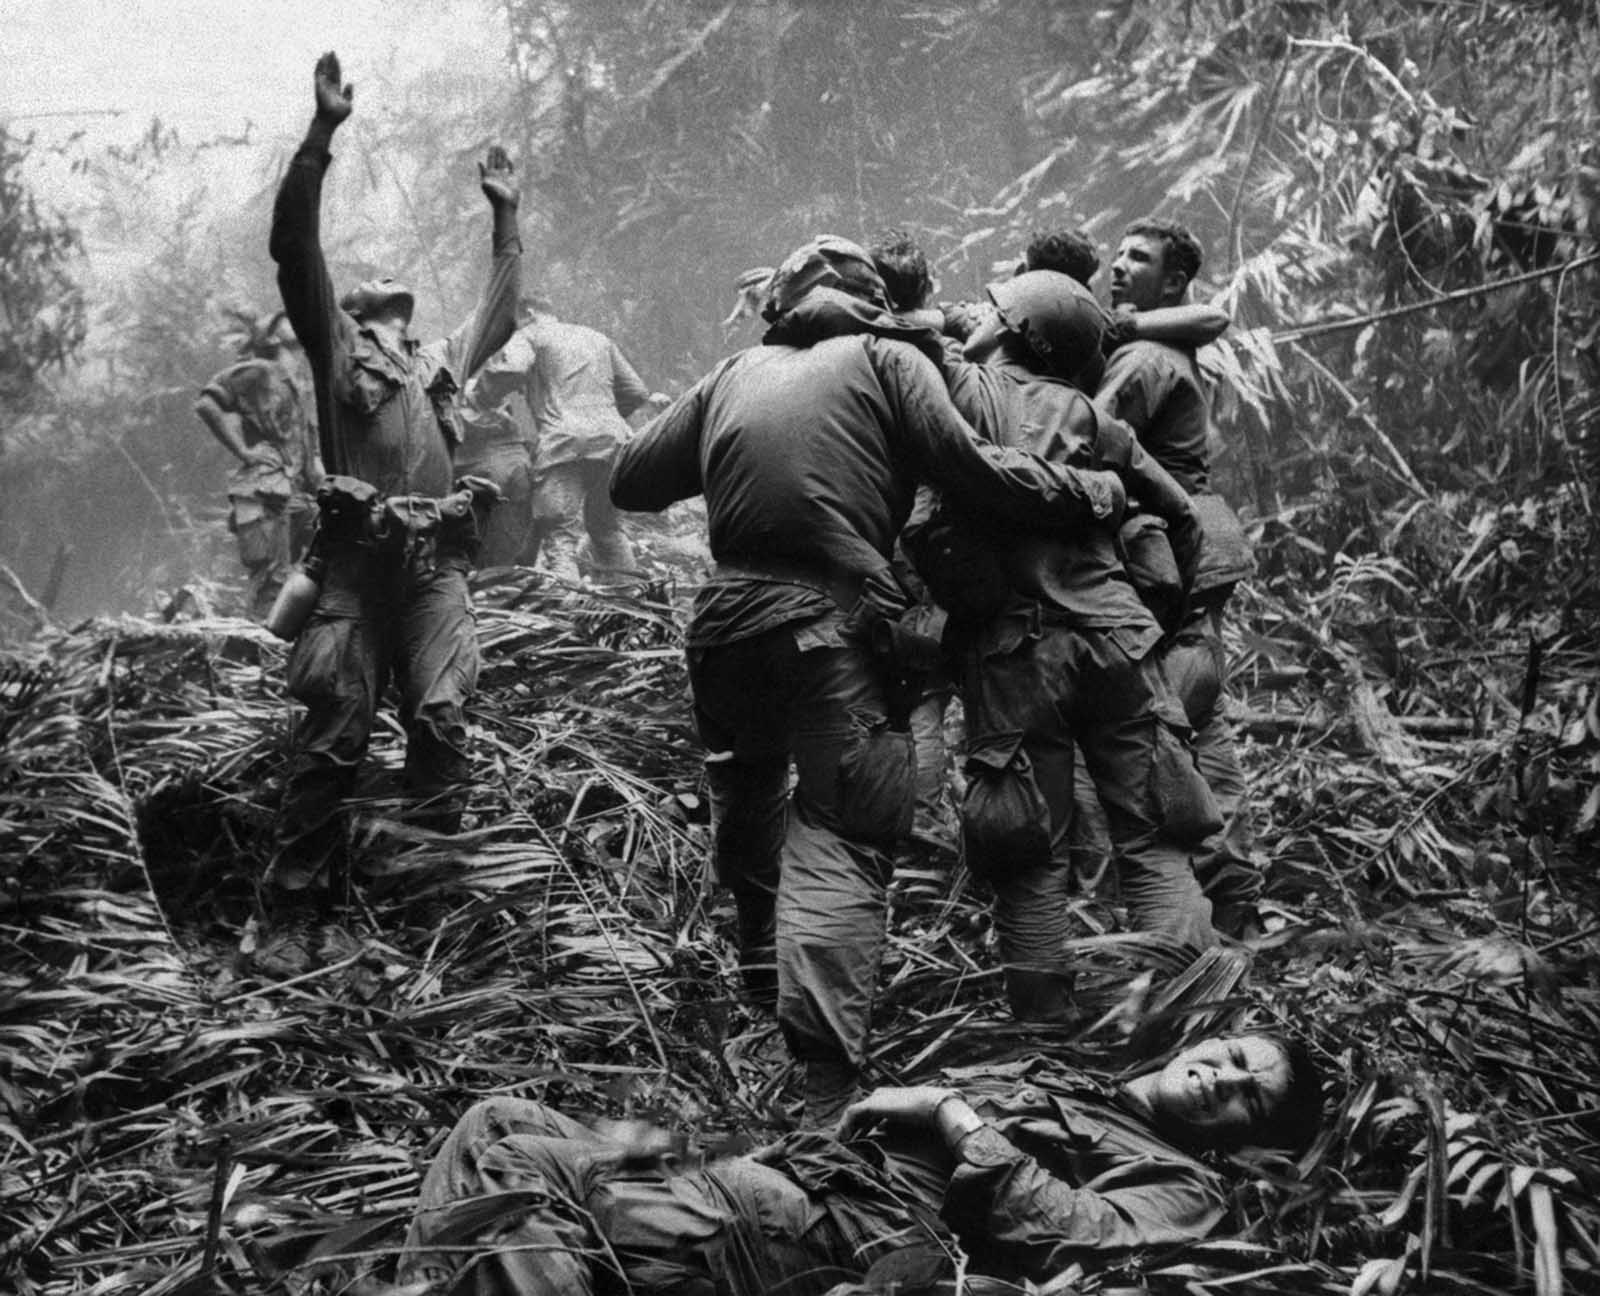 As fellow troopers aid wounded comrades, the first sergeant of A Company, 101st Airborne Division, guides a medevac helicopter through the jungle foliage to pick up casualties suffered during a five-day patrol near Hue, in April of 1968.